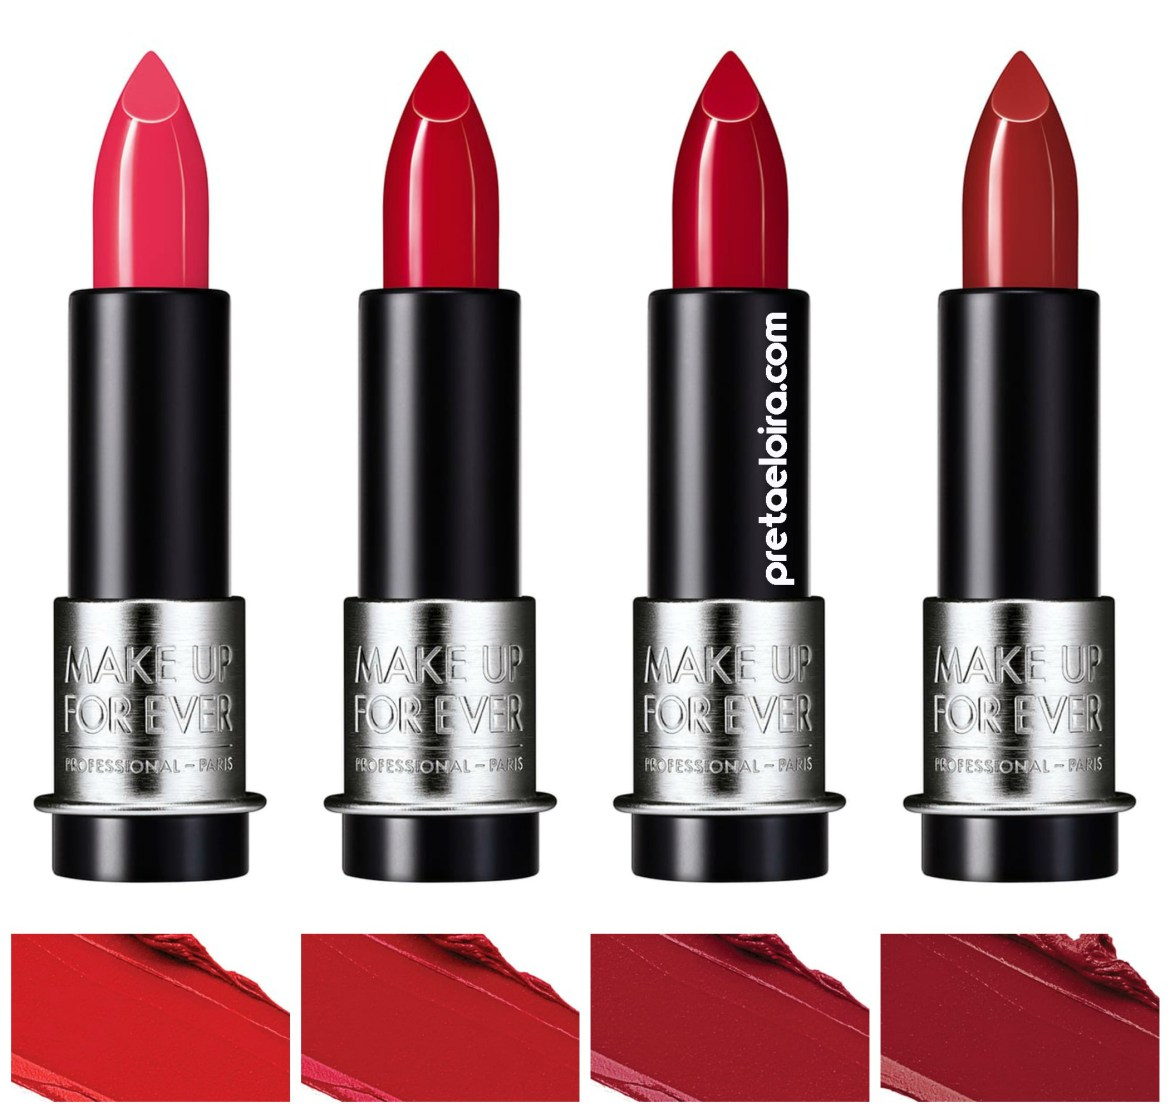 Make-Up-Ever-Artist-Rouge-Lipstick-pretaeloira-6 copia